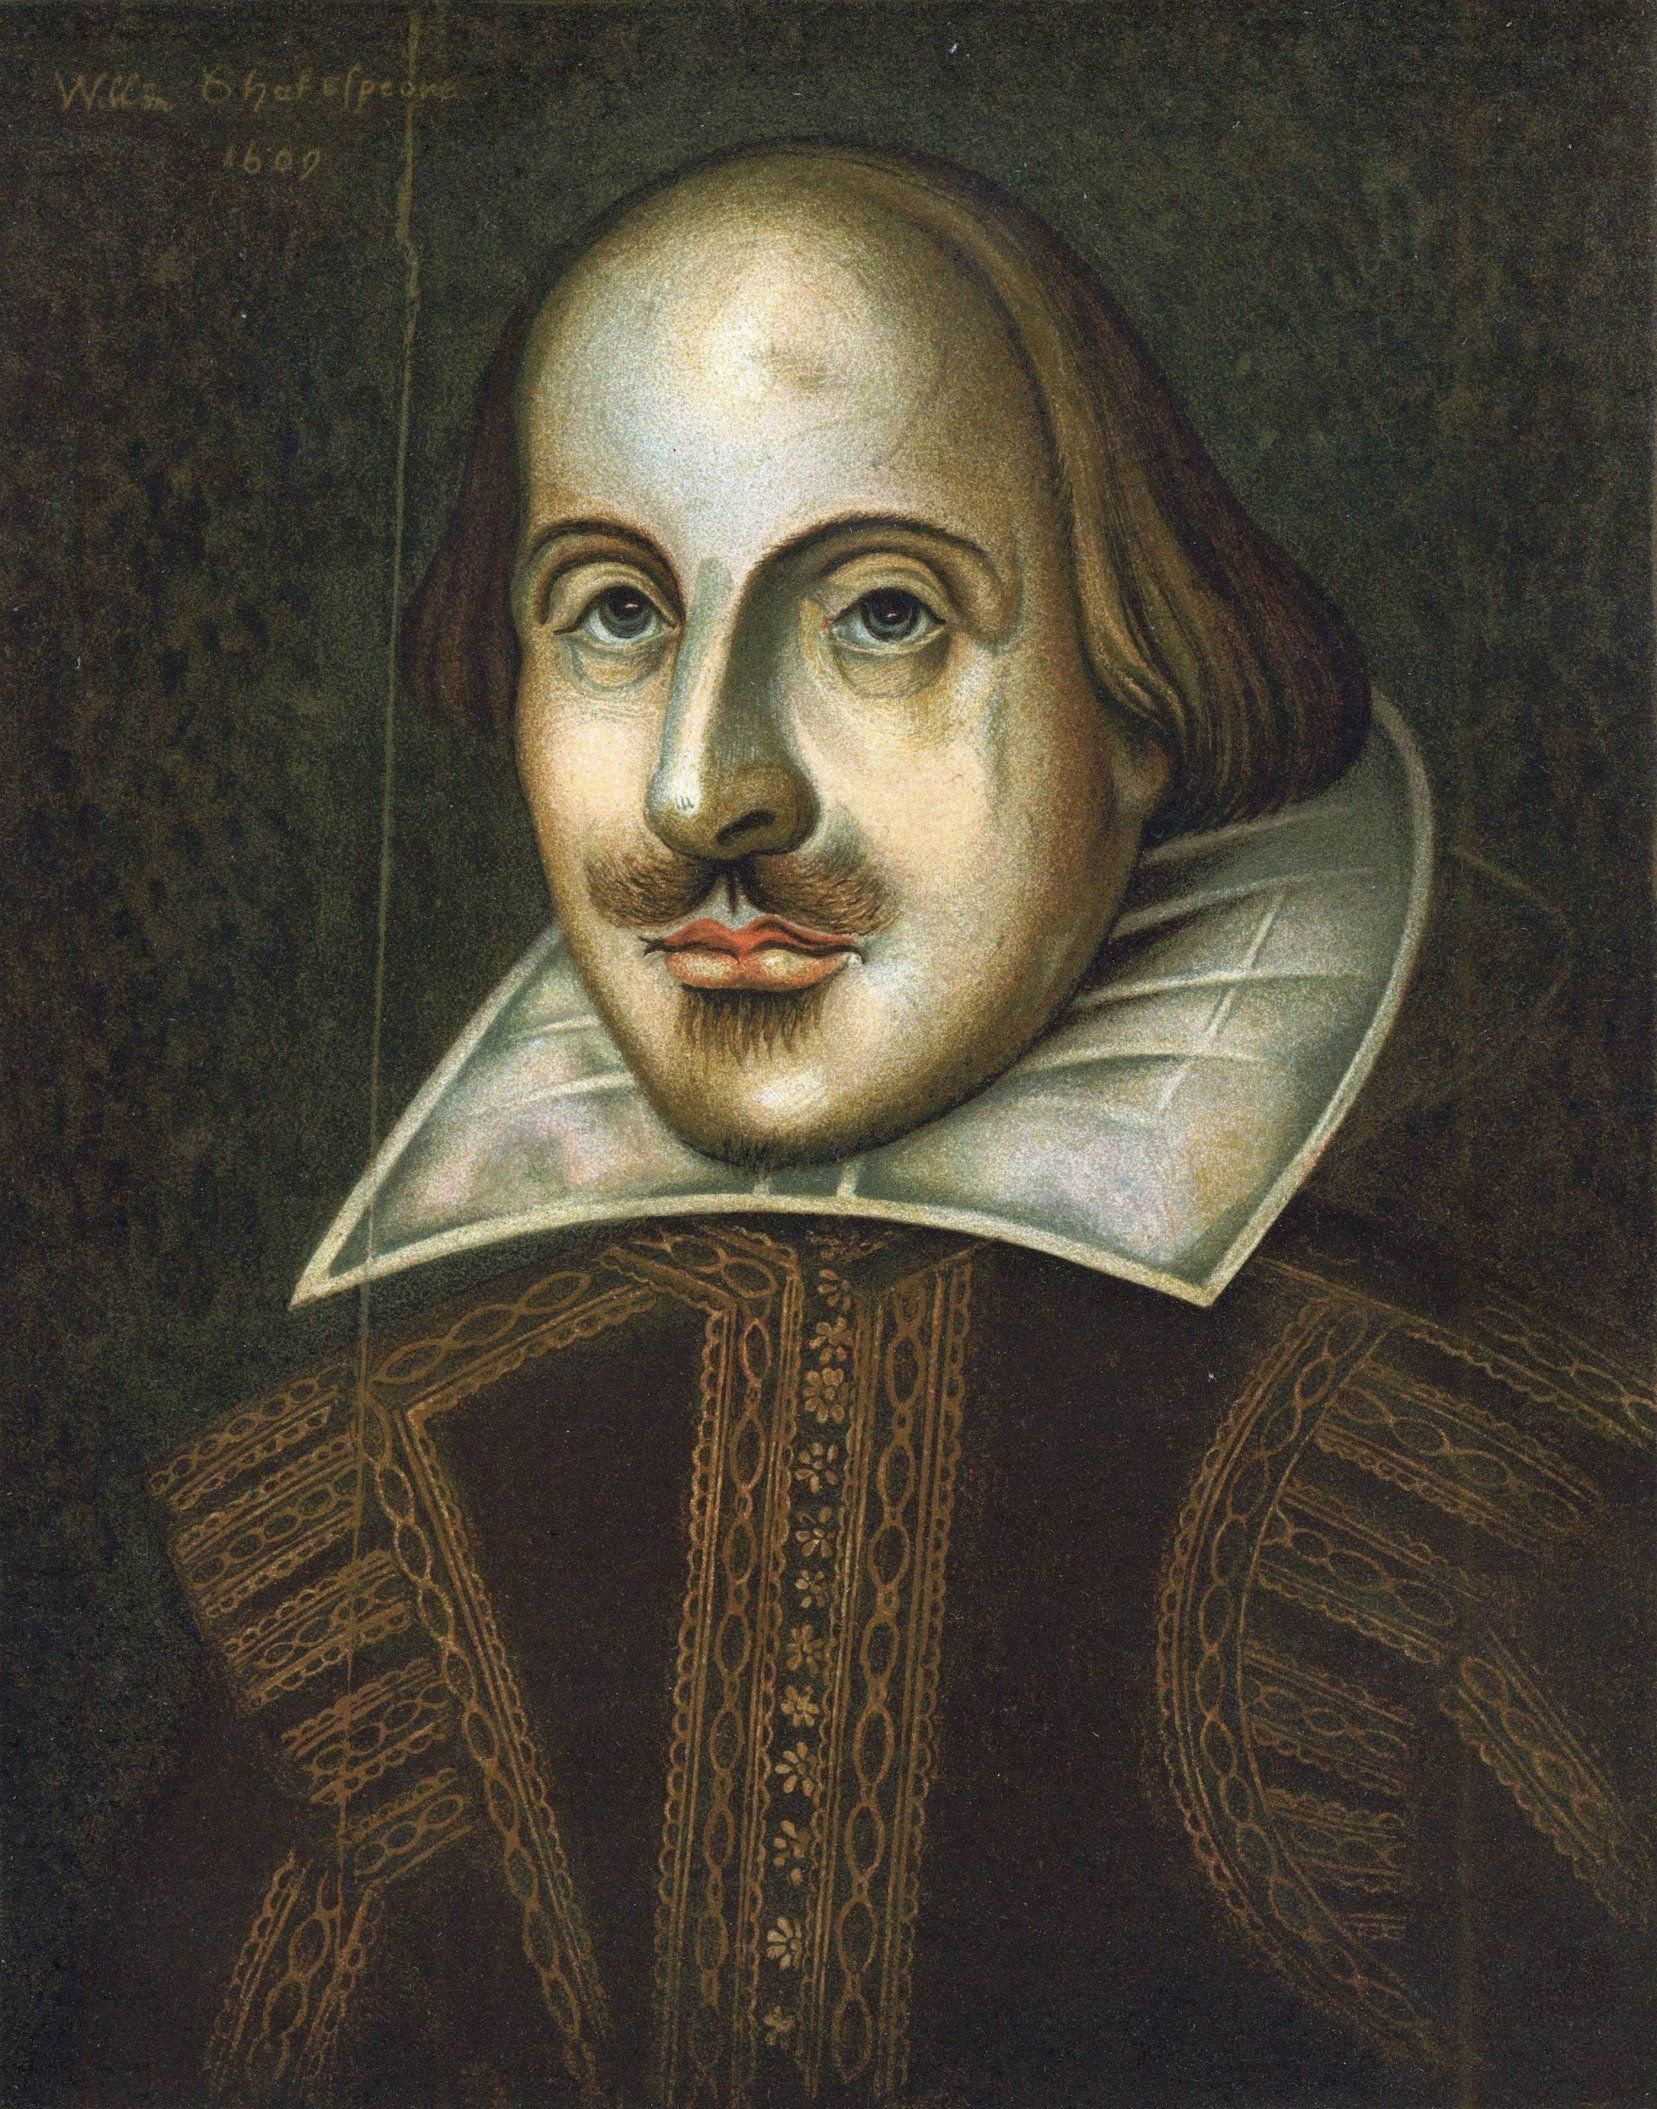 Portrait of English playwright, William Shakespeare